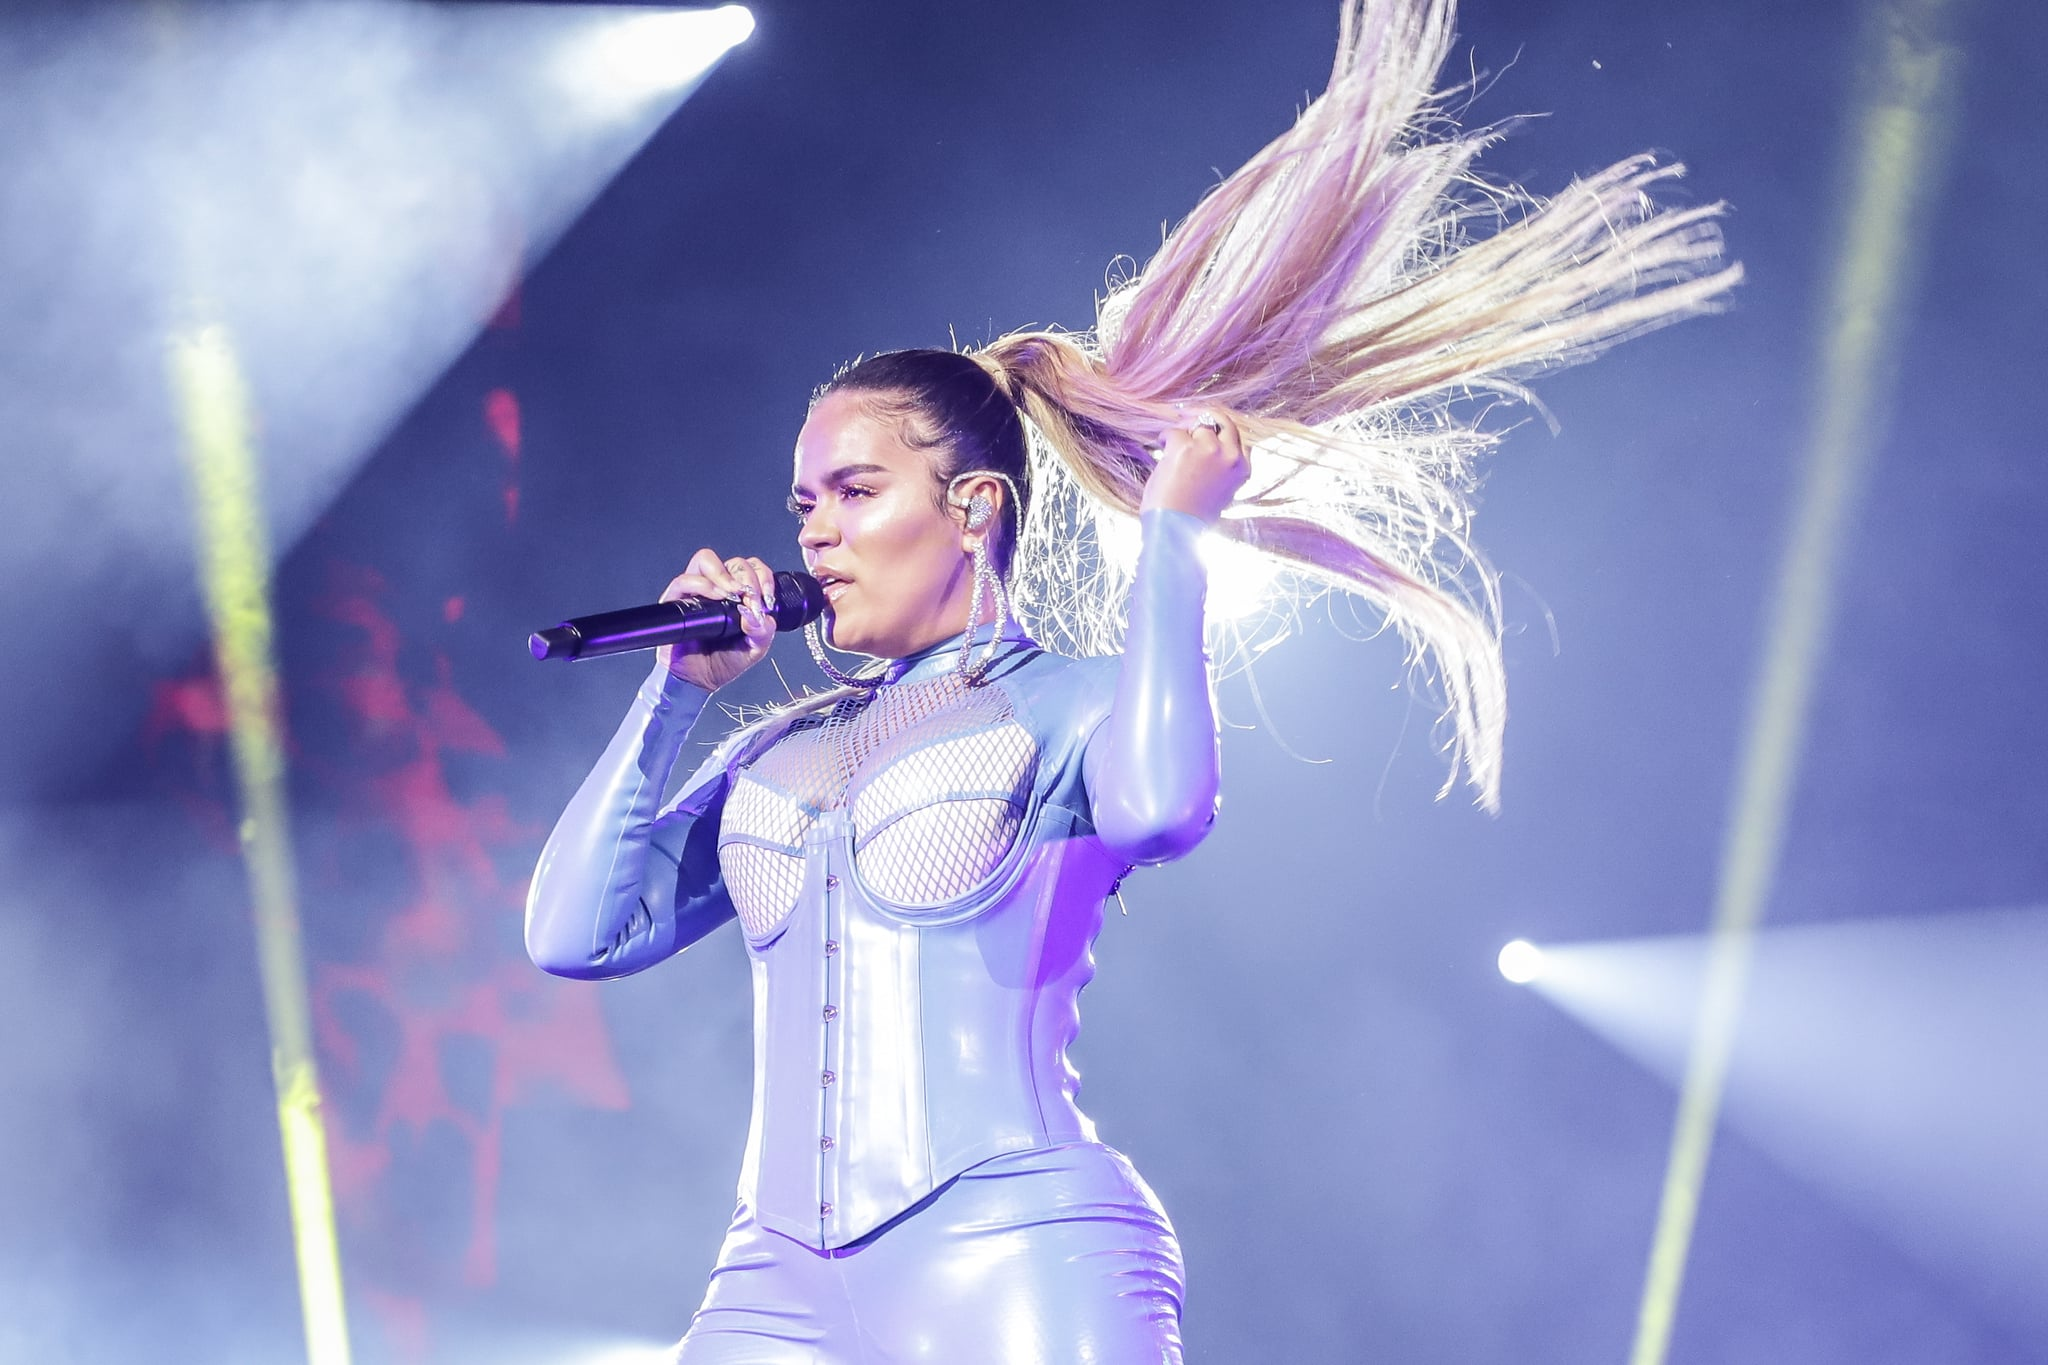 MIAMI, FL - OCTOBER 04:  Karol G performs during Gloria Trevi's Diosa de La Noche Tour at American Airlines Arena on October 4, 2019 in Miami, Florida.  (Photo by John Parra/Getty Images)